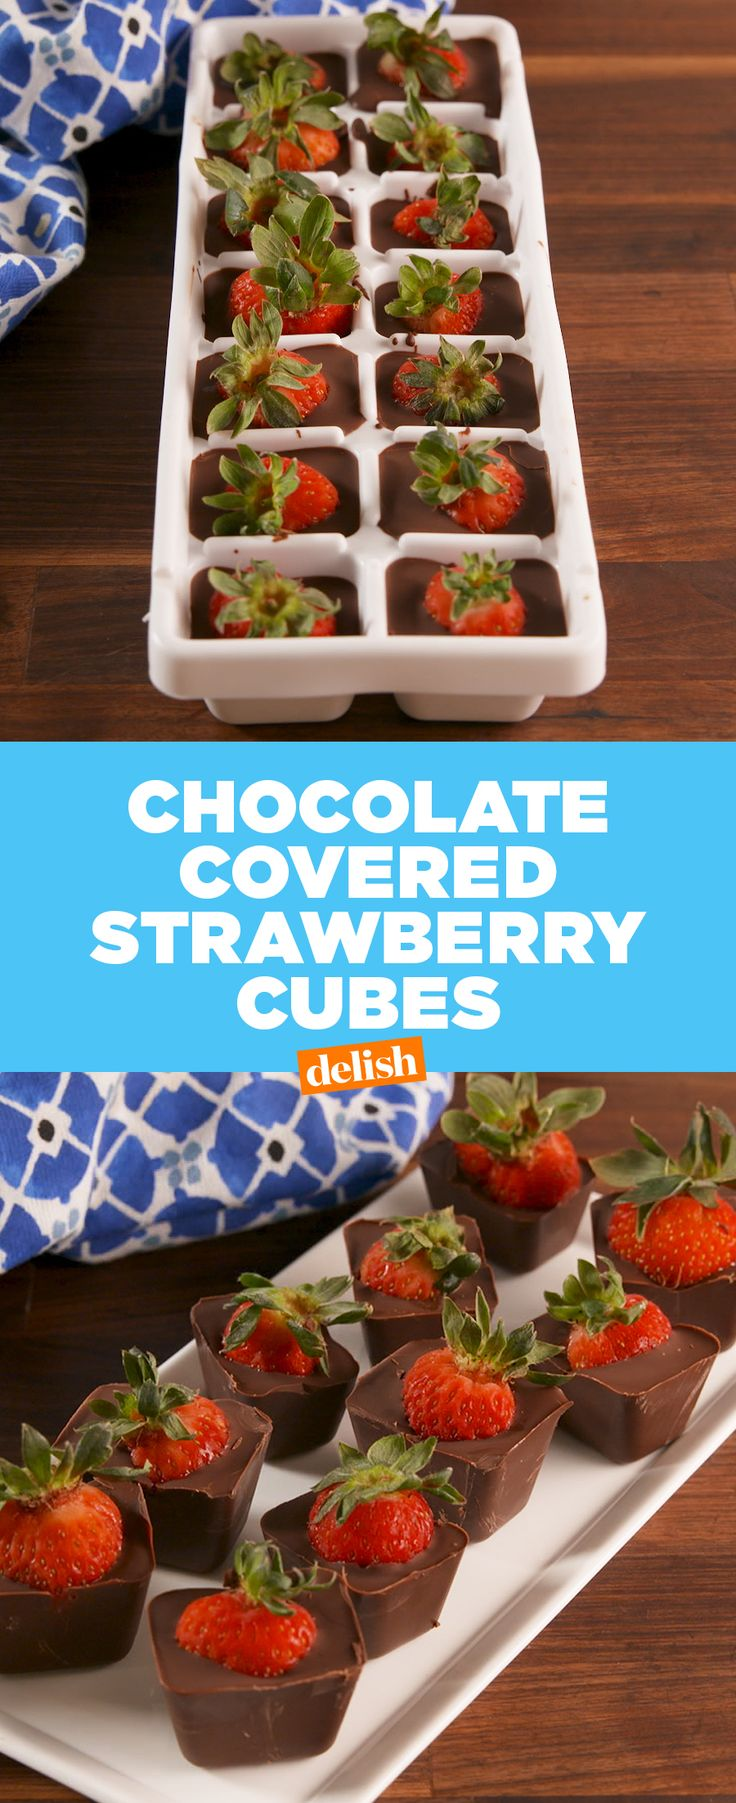 This ice cube tray hack is the easiest way to make chocolate covered strawberries.